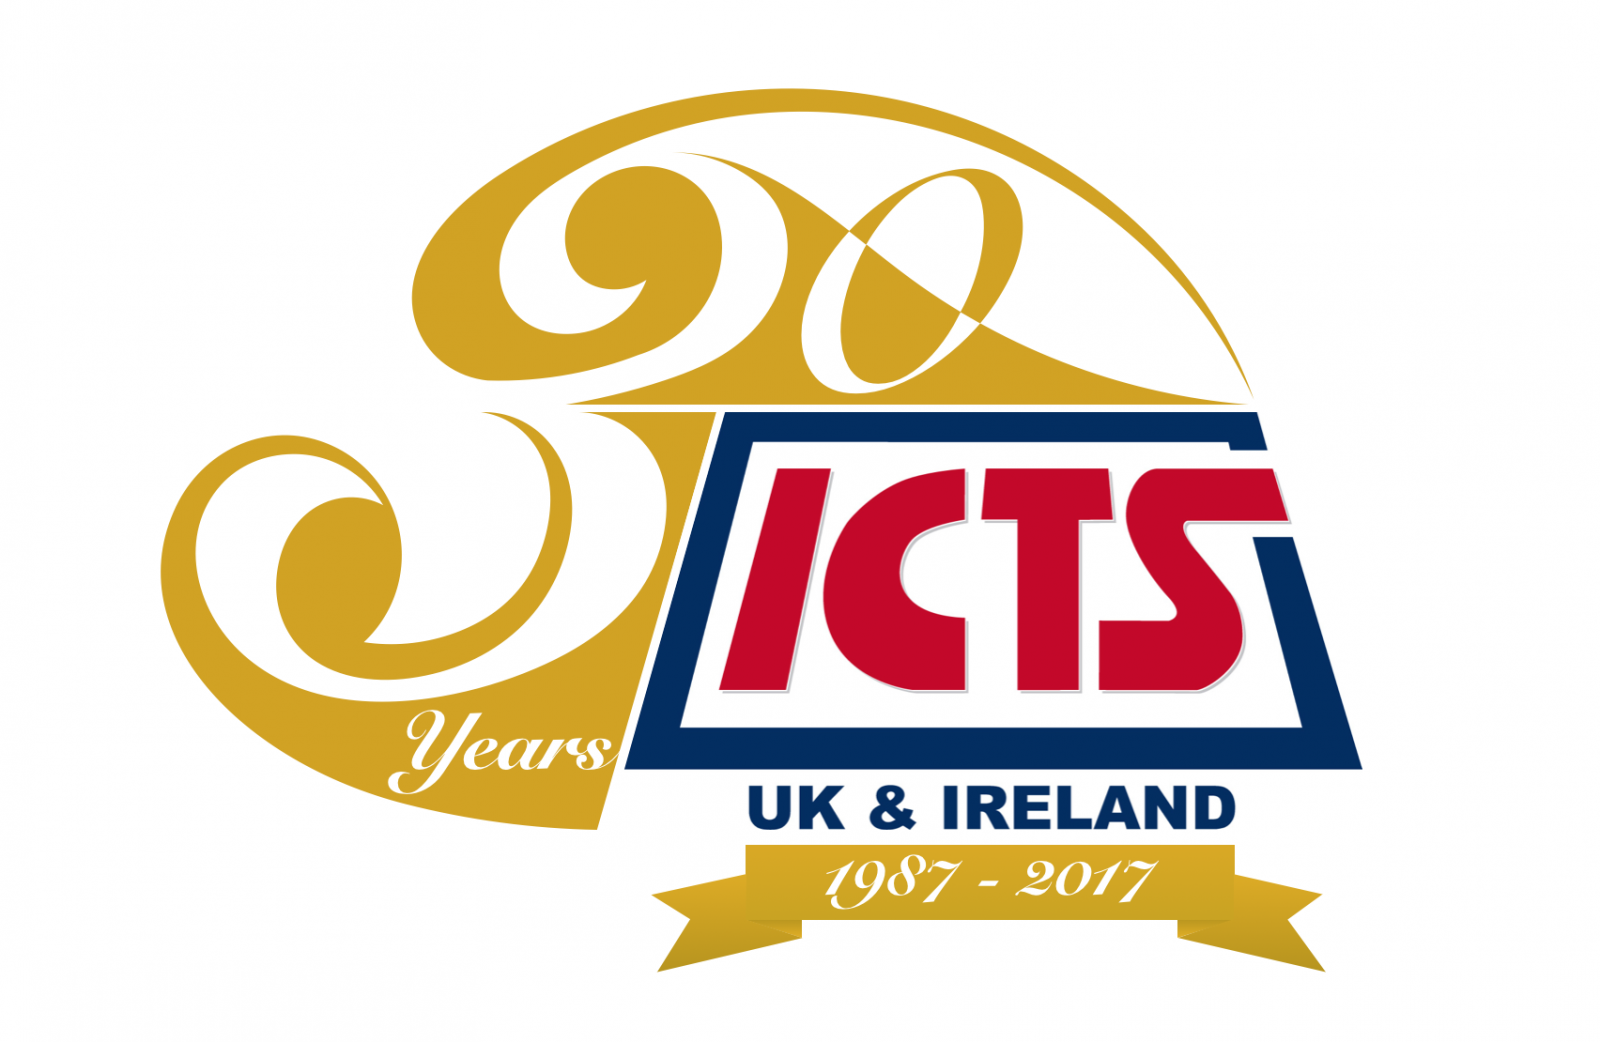 Celebrating ICTS' 30th Anniversary